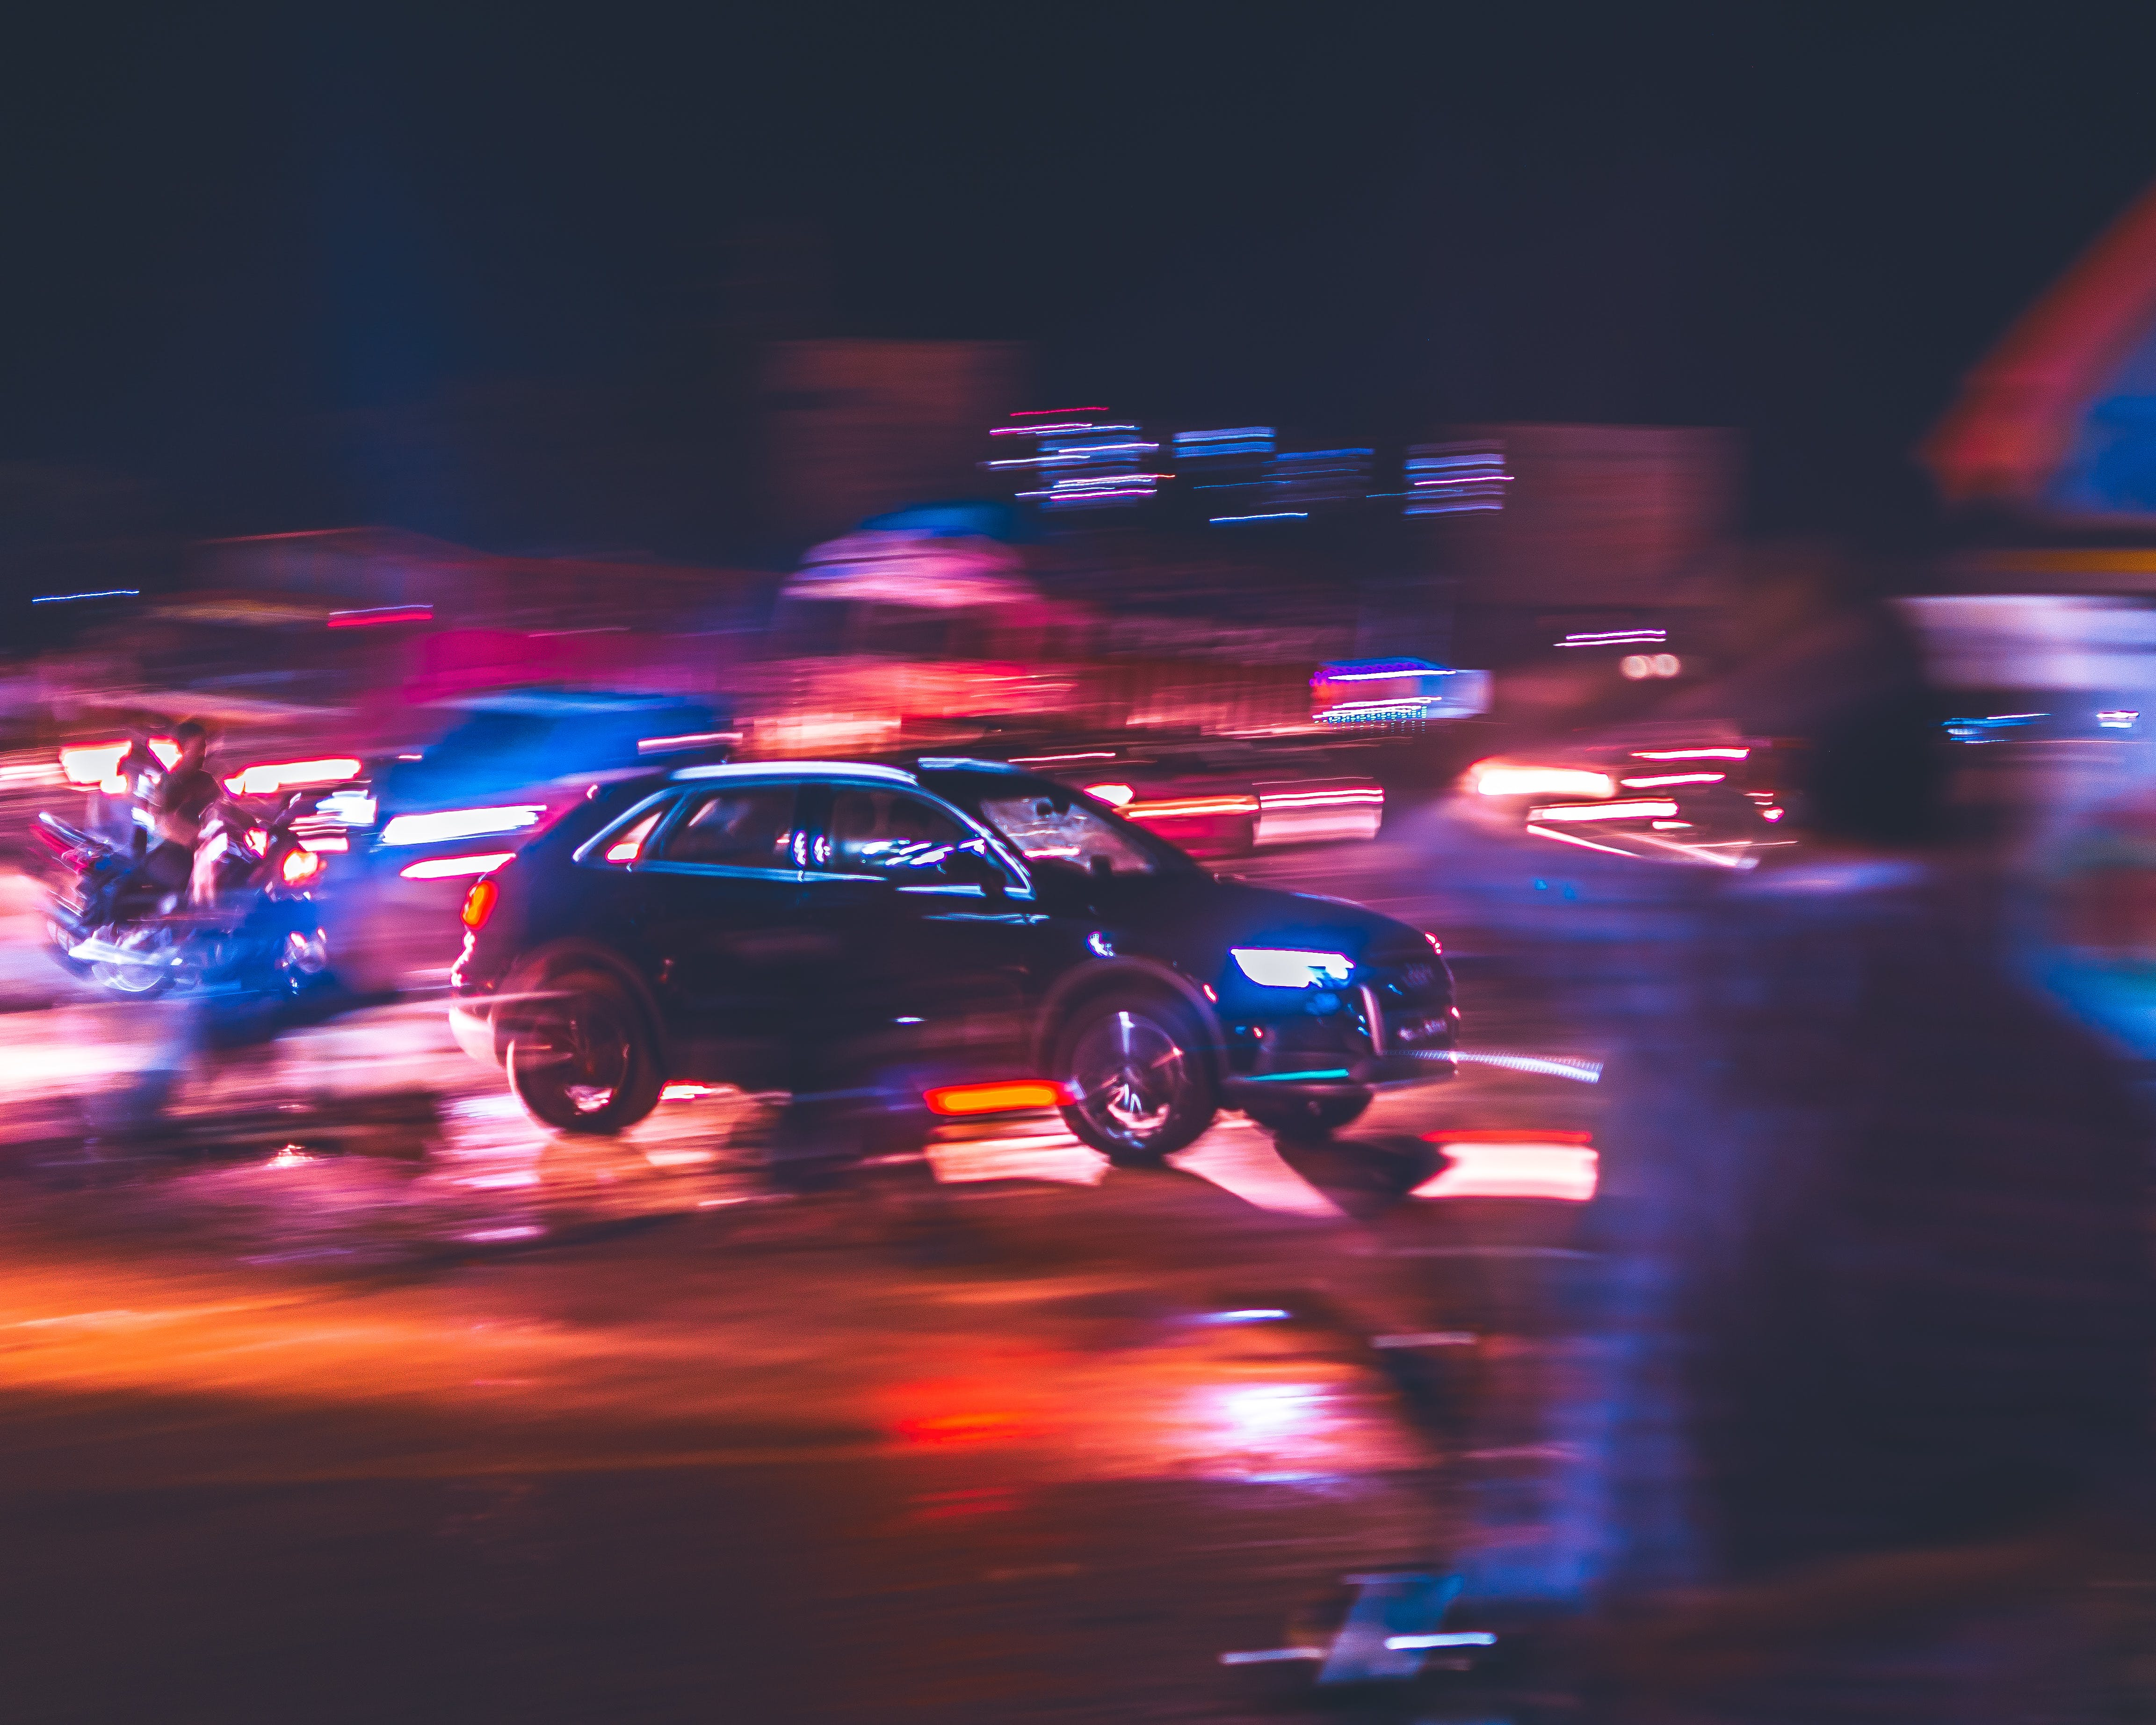 Free stock photo of city, cars, streets, night